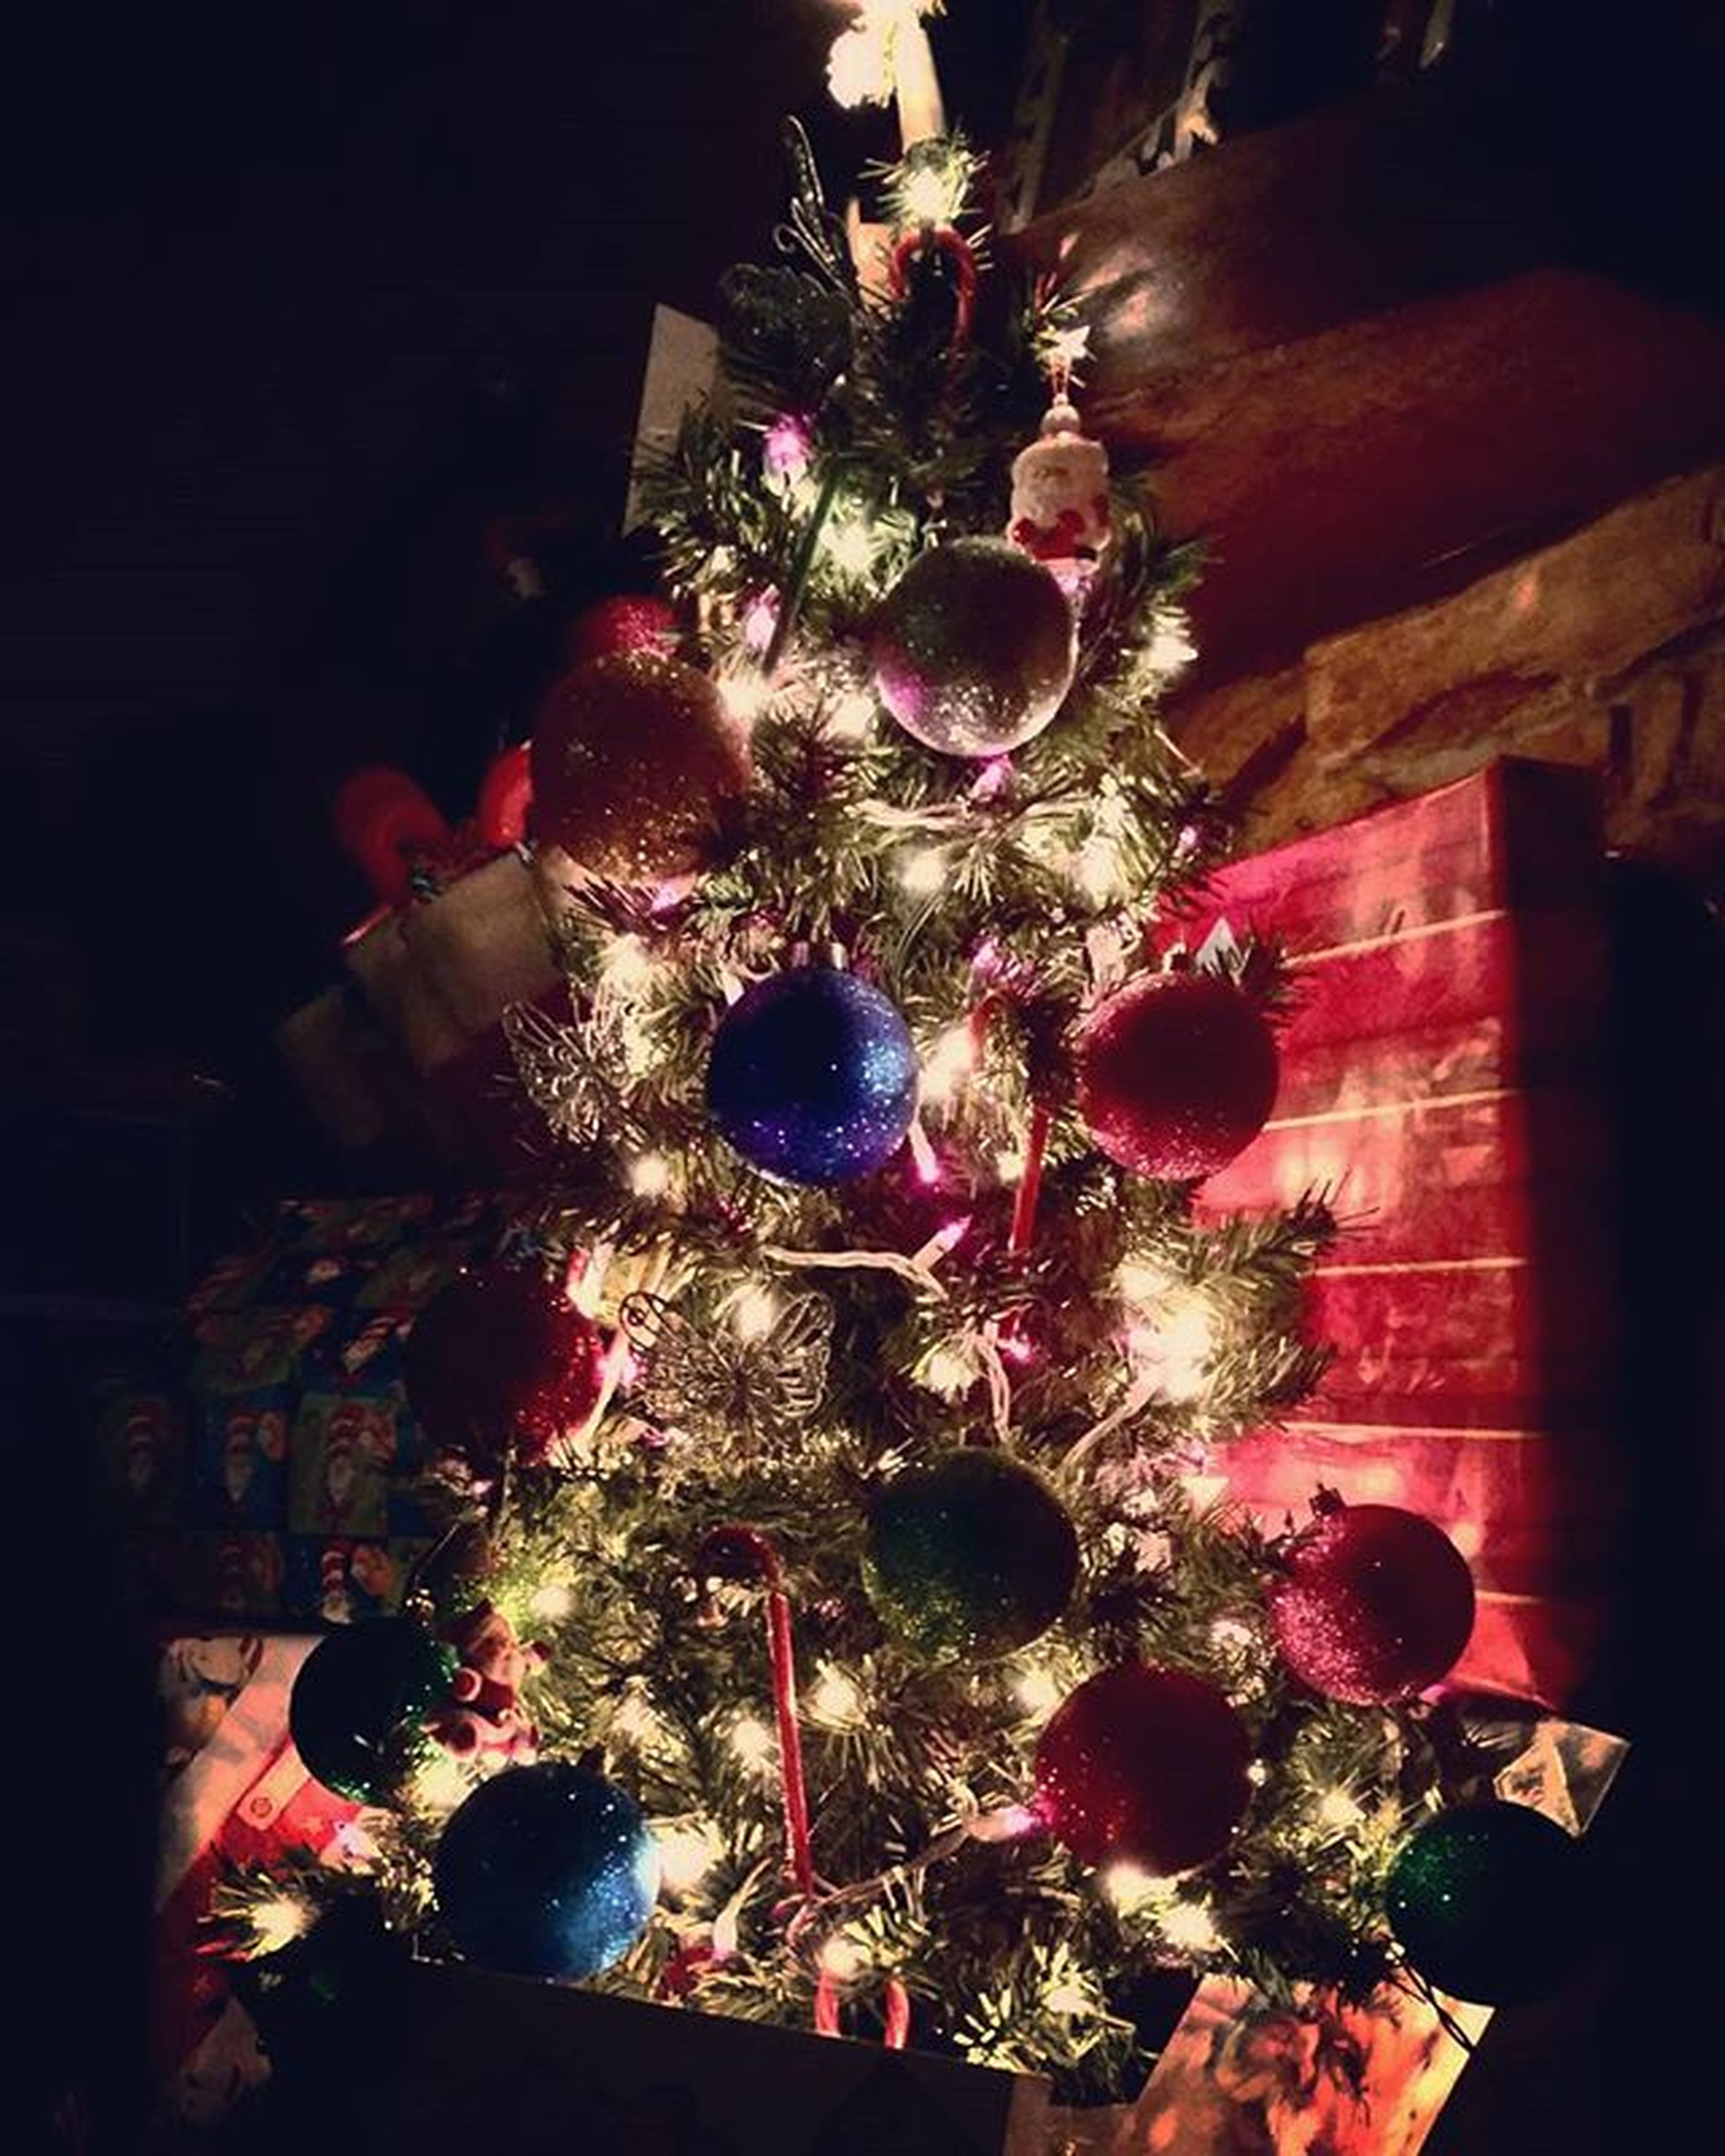 indoors, decoration, illuminated, hanging, celebration, christmas, christmas decoration, decor, tradition, lighting equipment, christmas tree, christmas lights, night, home interior, christmas ornament, chandelier, low angle view, cultures, flower, ceiling